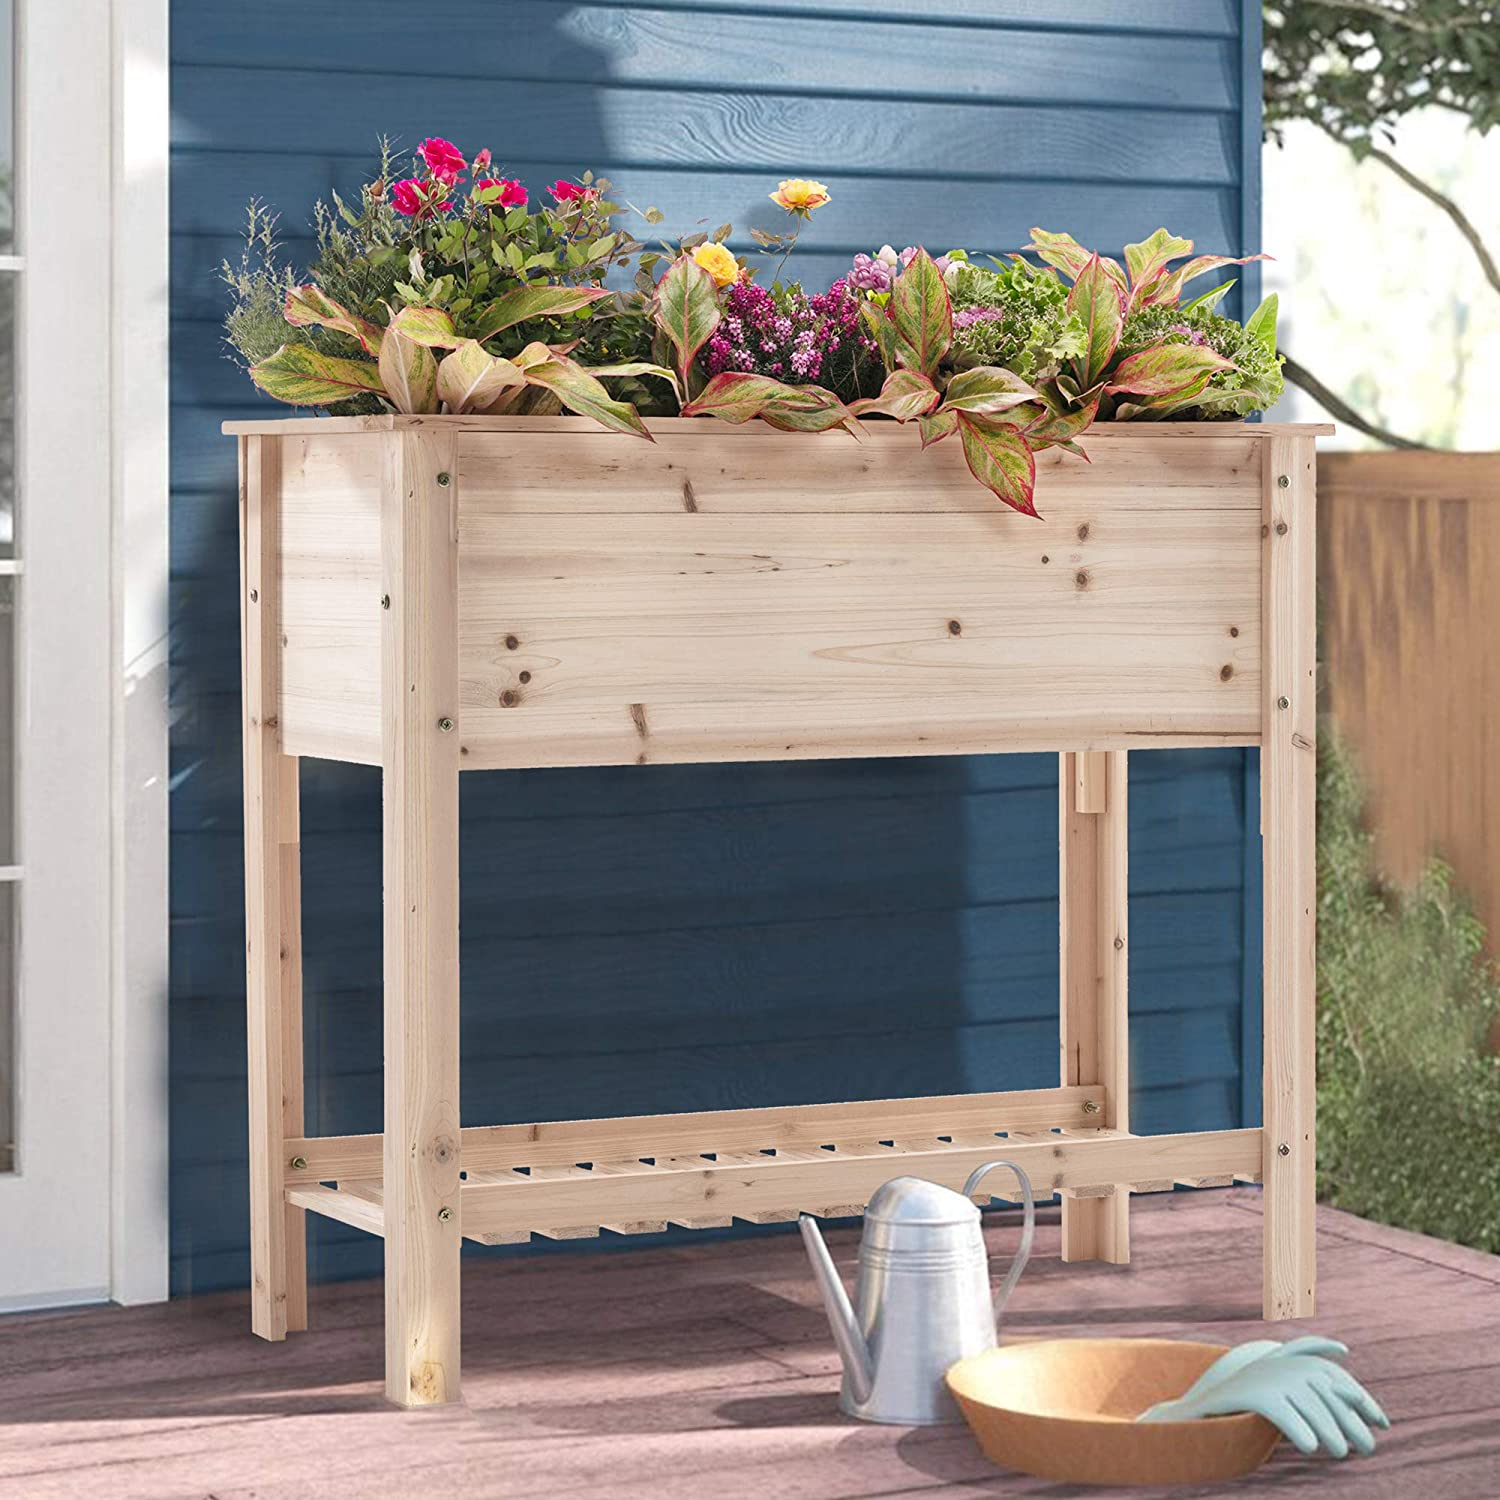 SIMFLAG Raised Garden Bed with Legs, Wood Planters Bed with Large Storage Shelf,36x15.9x31.6-inch Garden Boxes Outdoor Raised Suitable for Vegetable, Flower,Herb